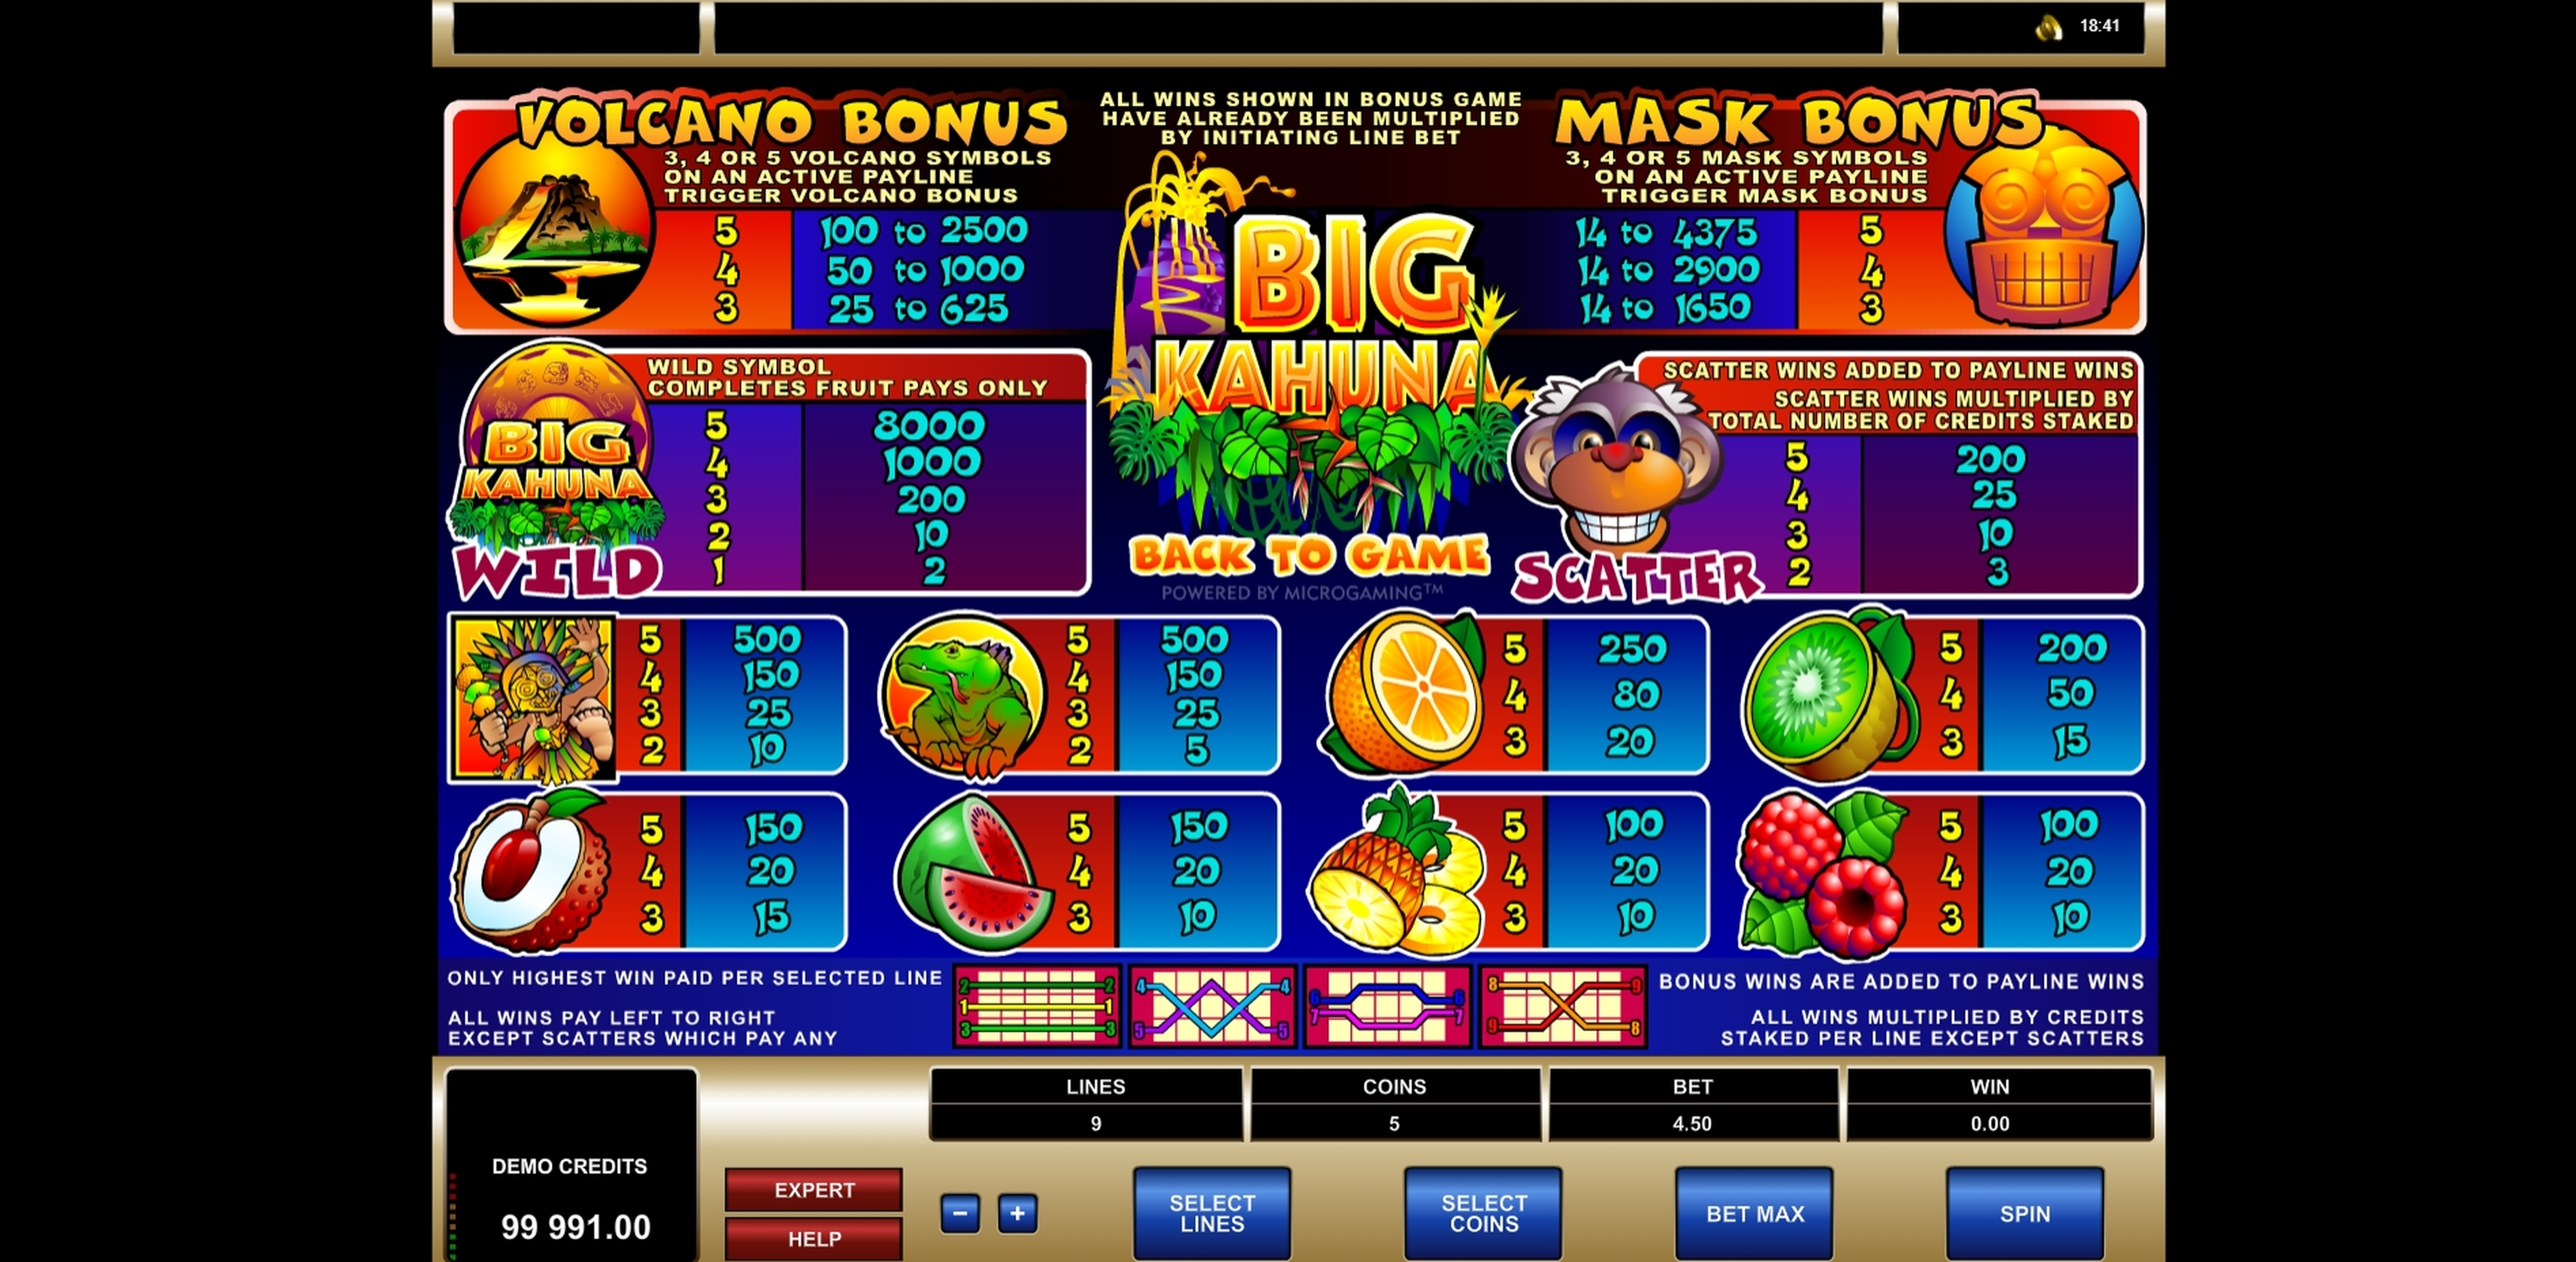 Info of Big Kahuna Slot Game by Microgaming